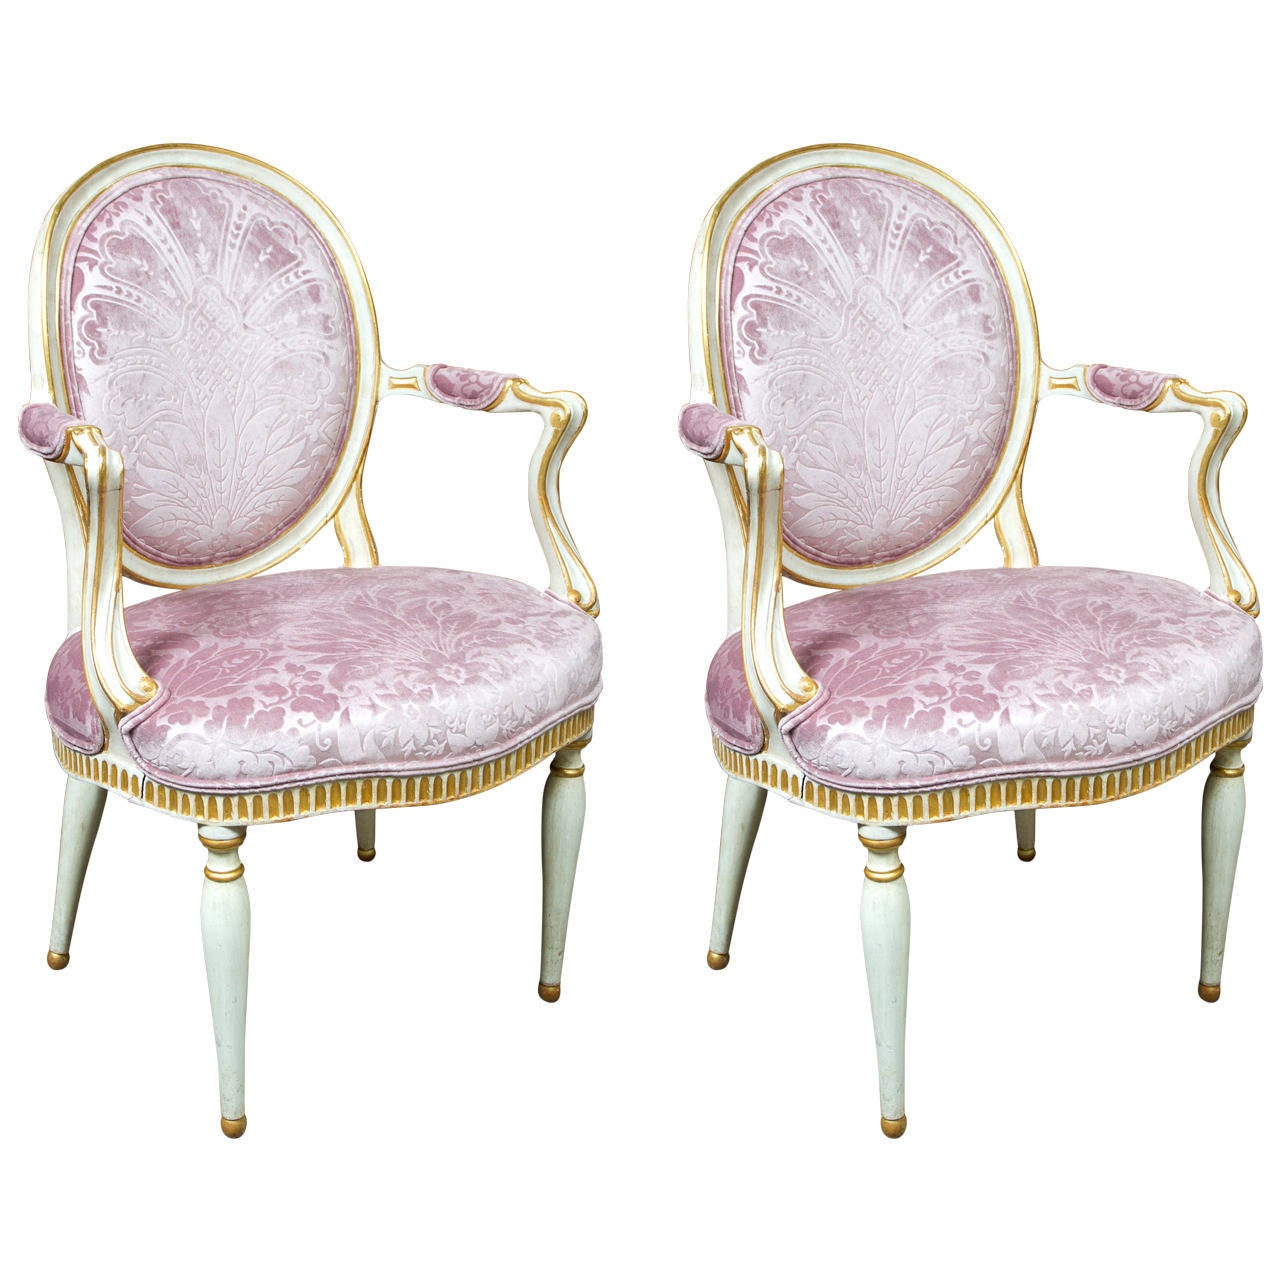 Pair Of Italian Neoclassical Chairs For Sale At 1stdibs